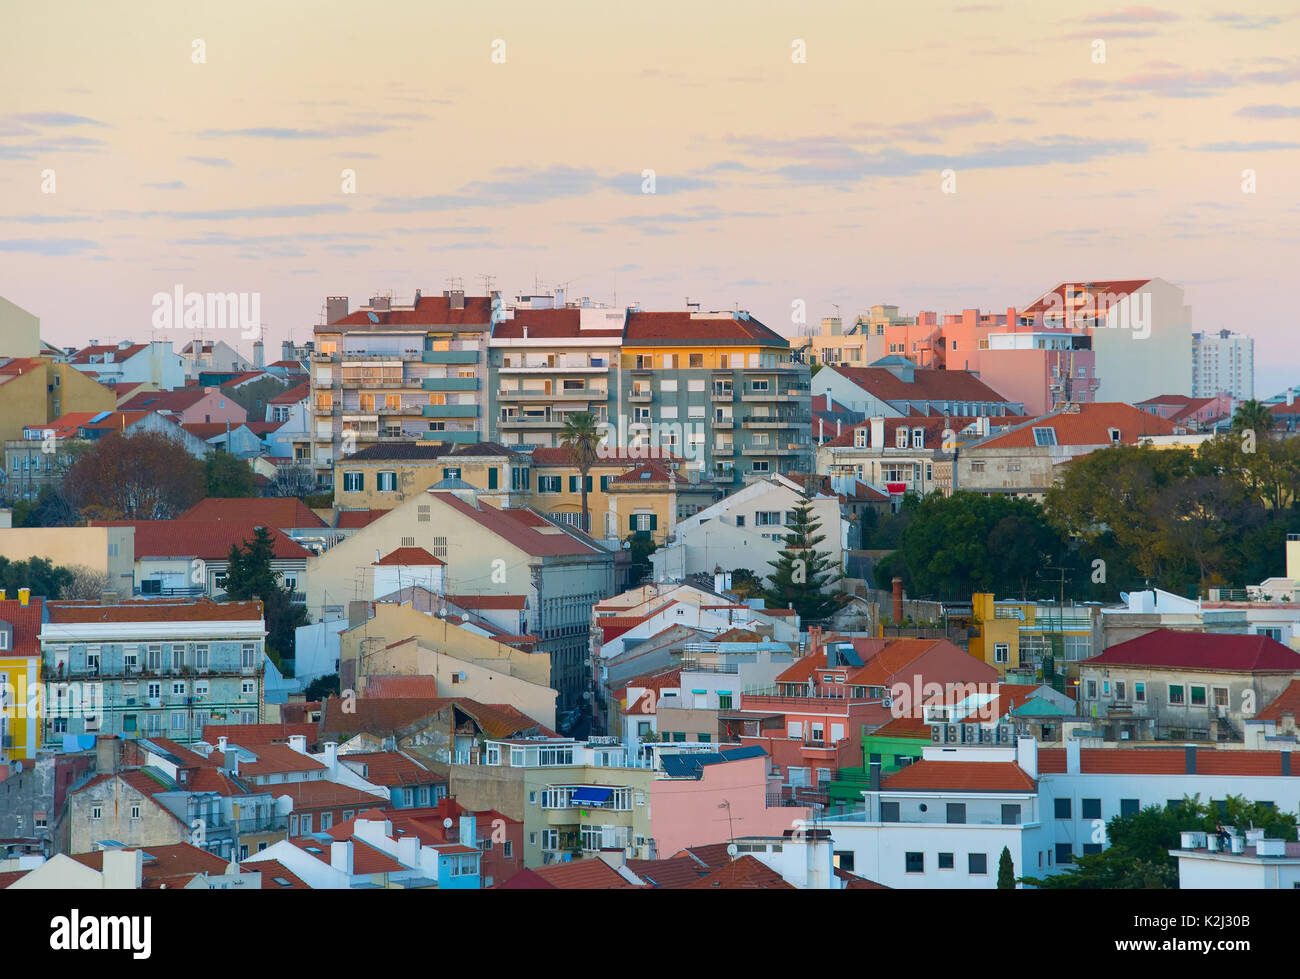 Twilight view of Old Town architecture of Lisbon. Portugal - Stock Image